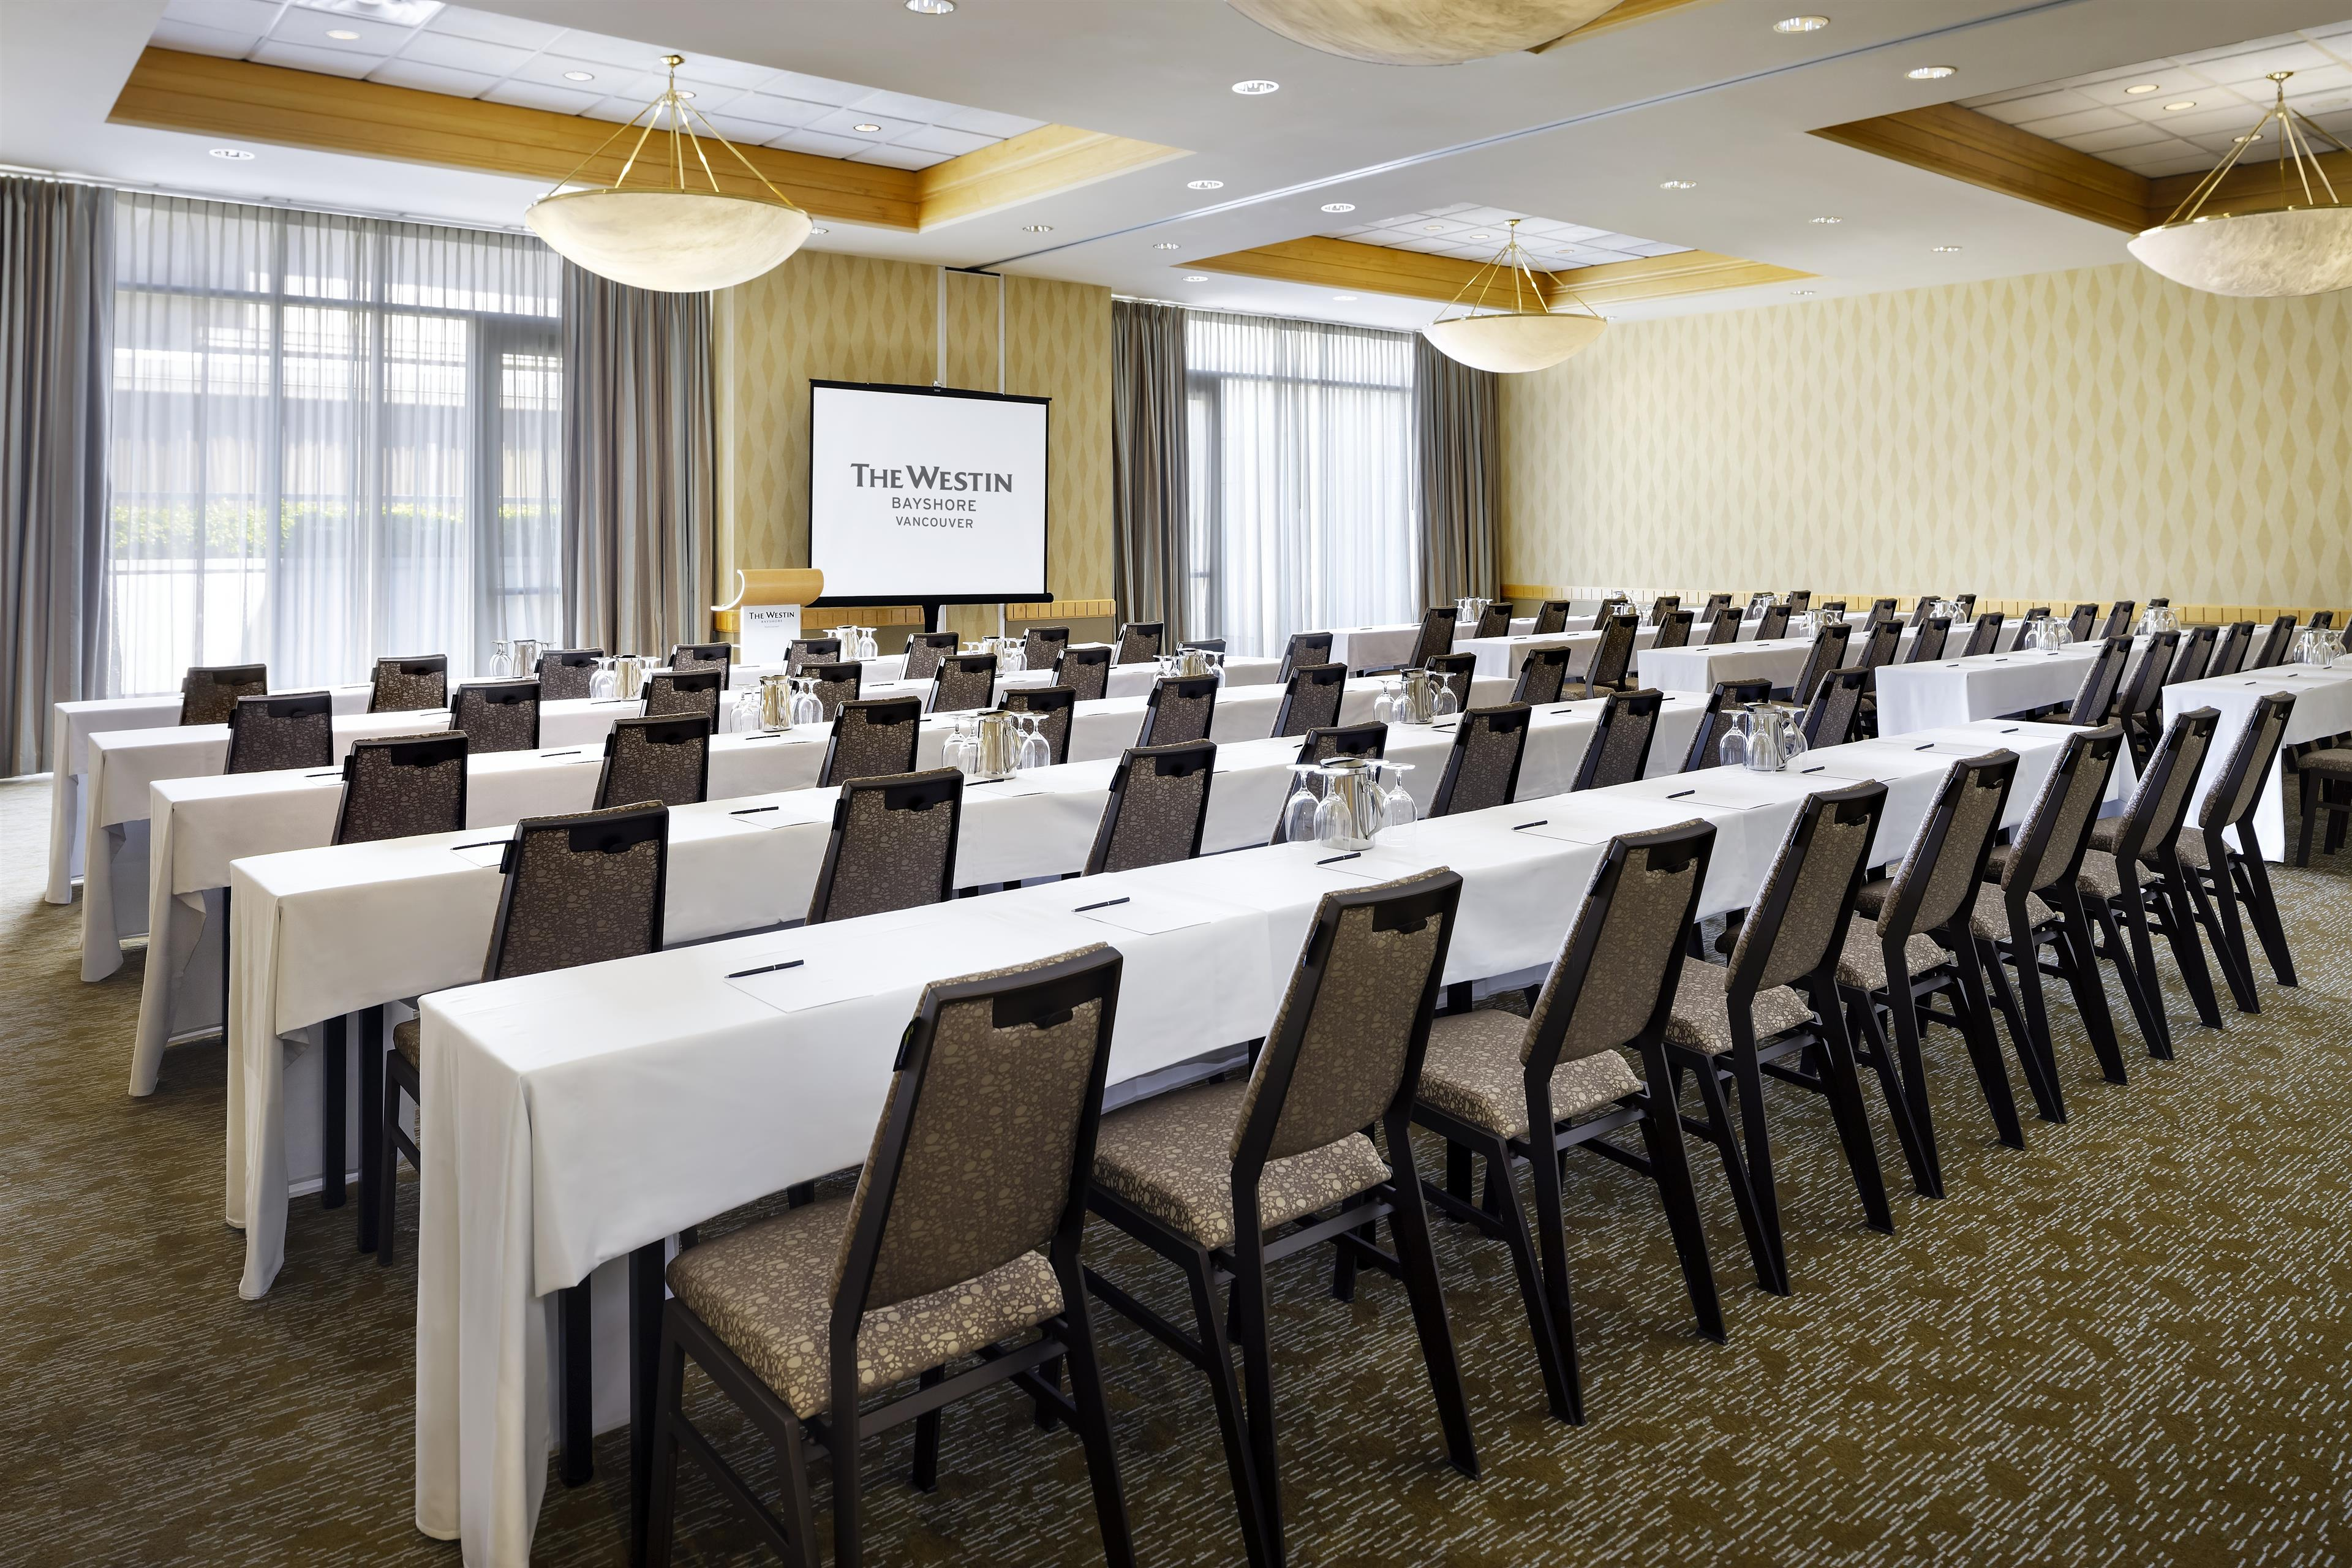 The Westin Bayshore, Vancouver in Vancouver: Cypress Classroom